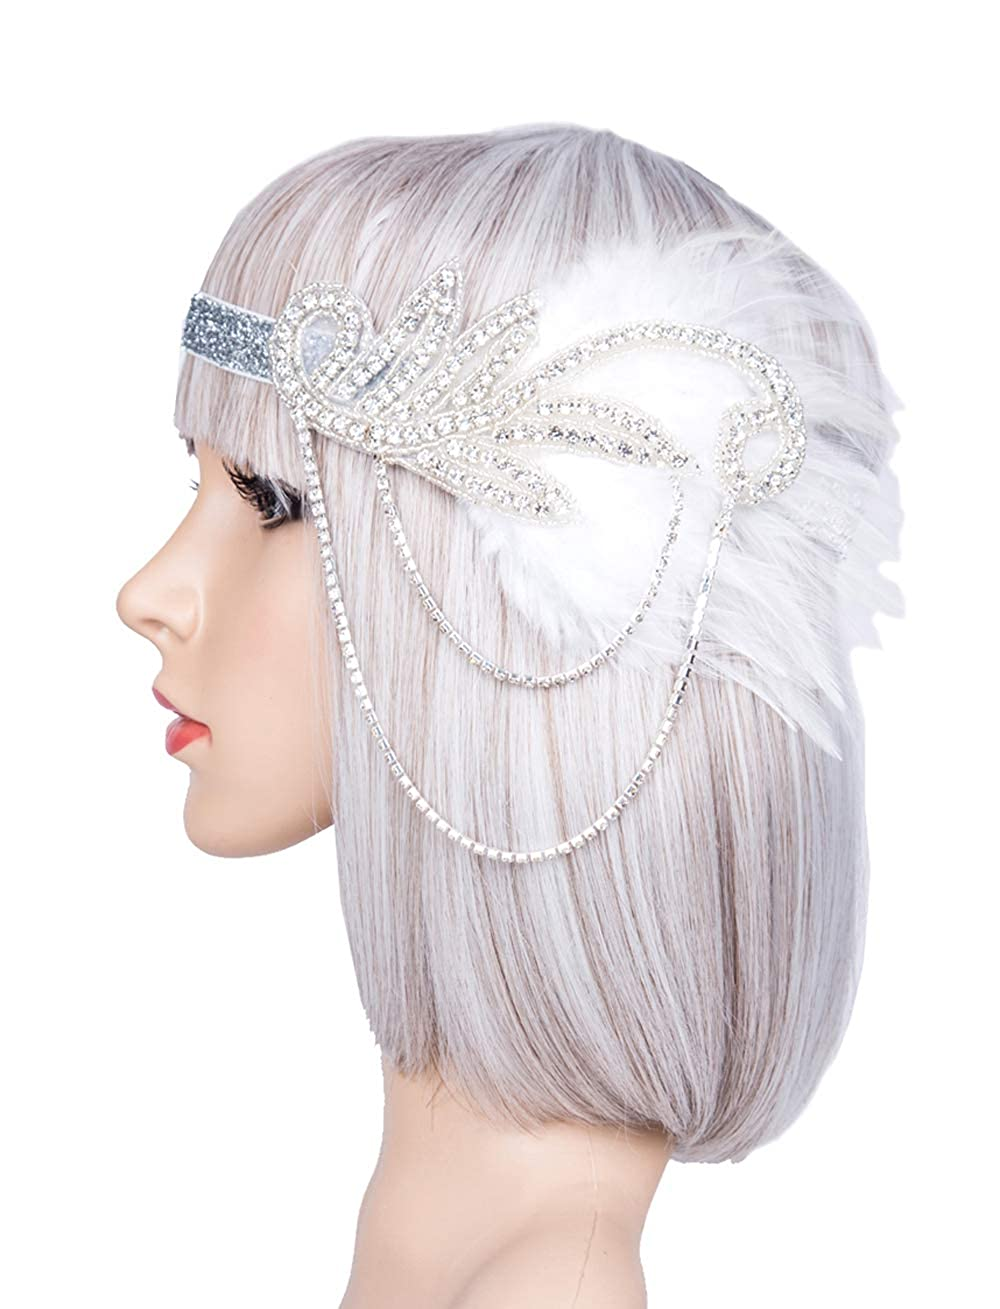 Silver 20s Headpiece Vintage 1920s Headband Flapper Great Gatsby 20s Accessories